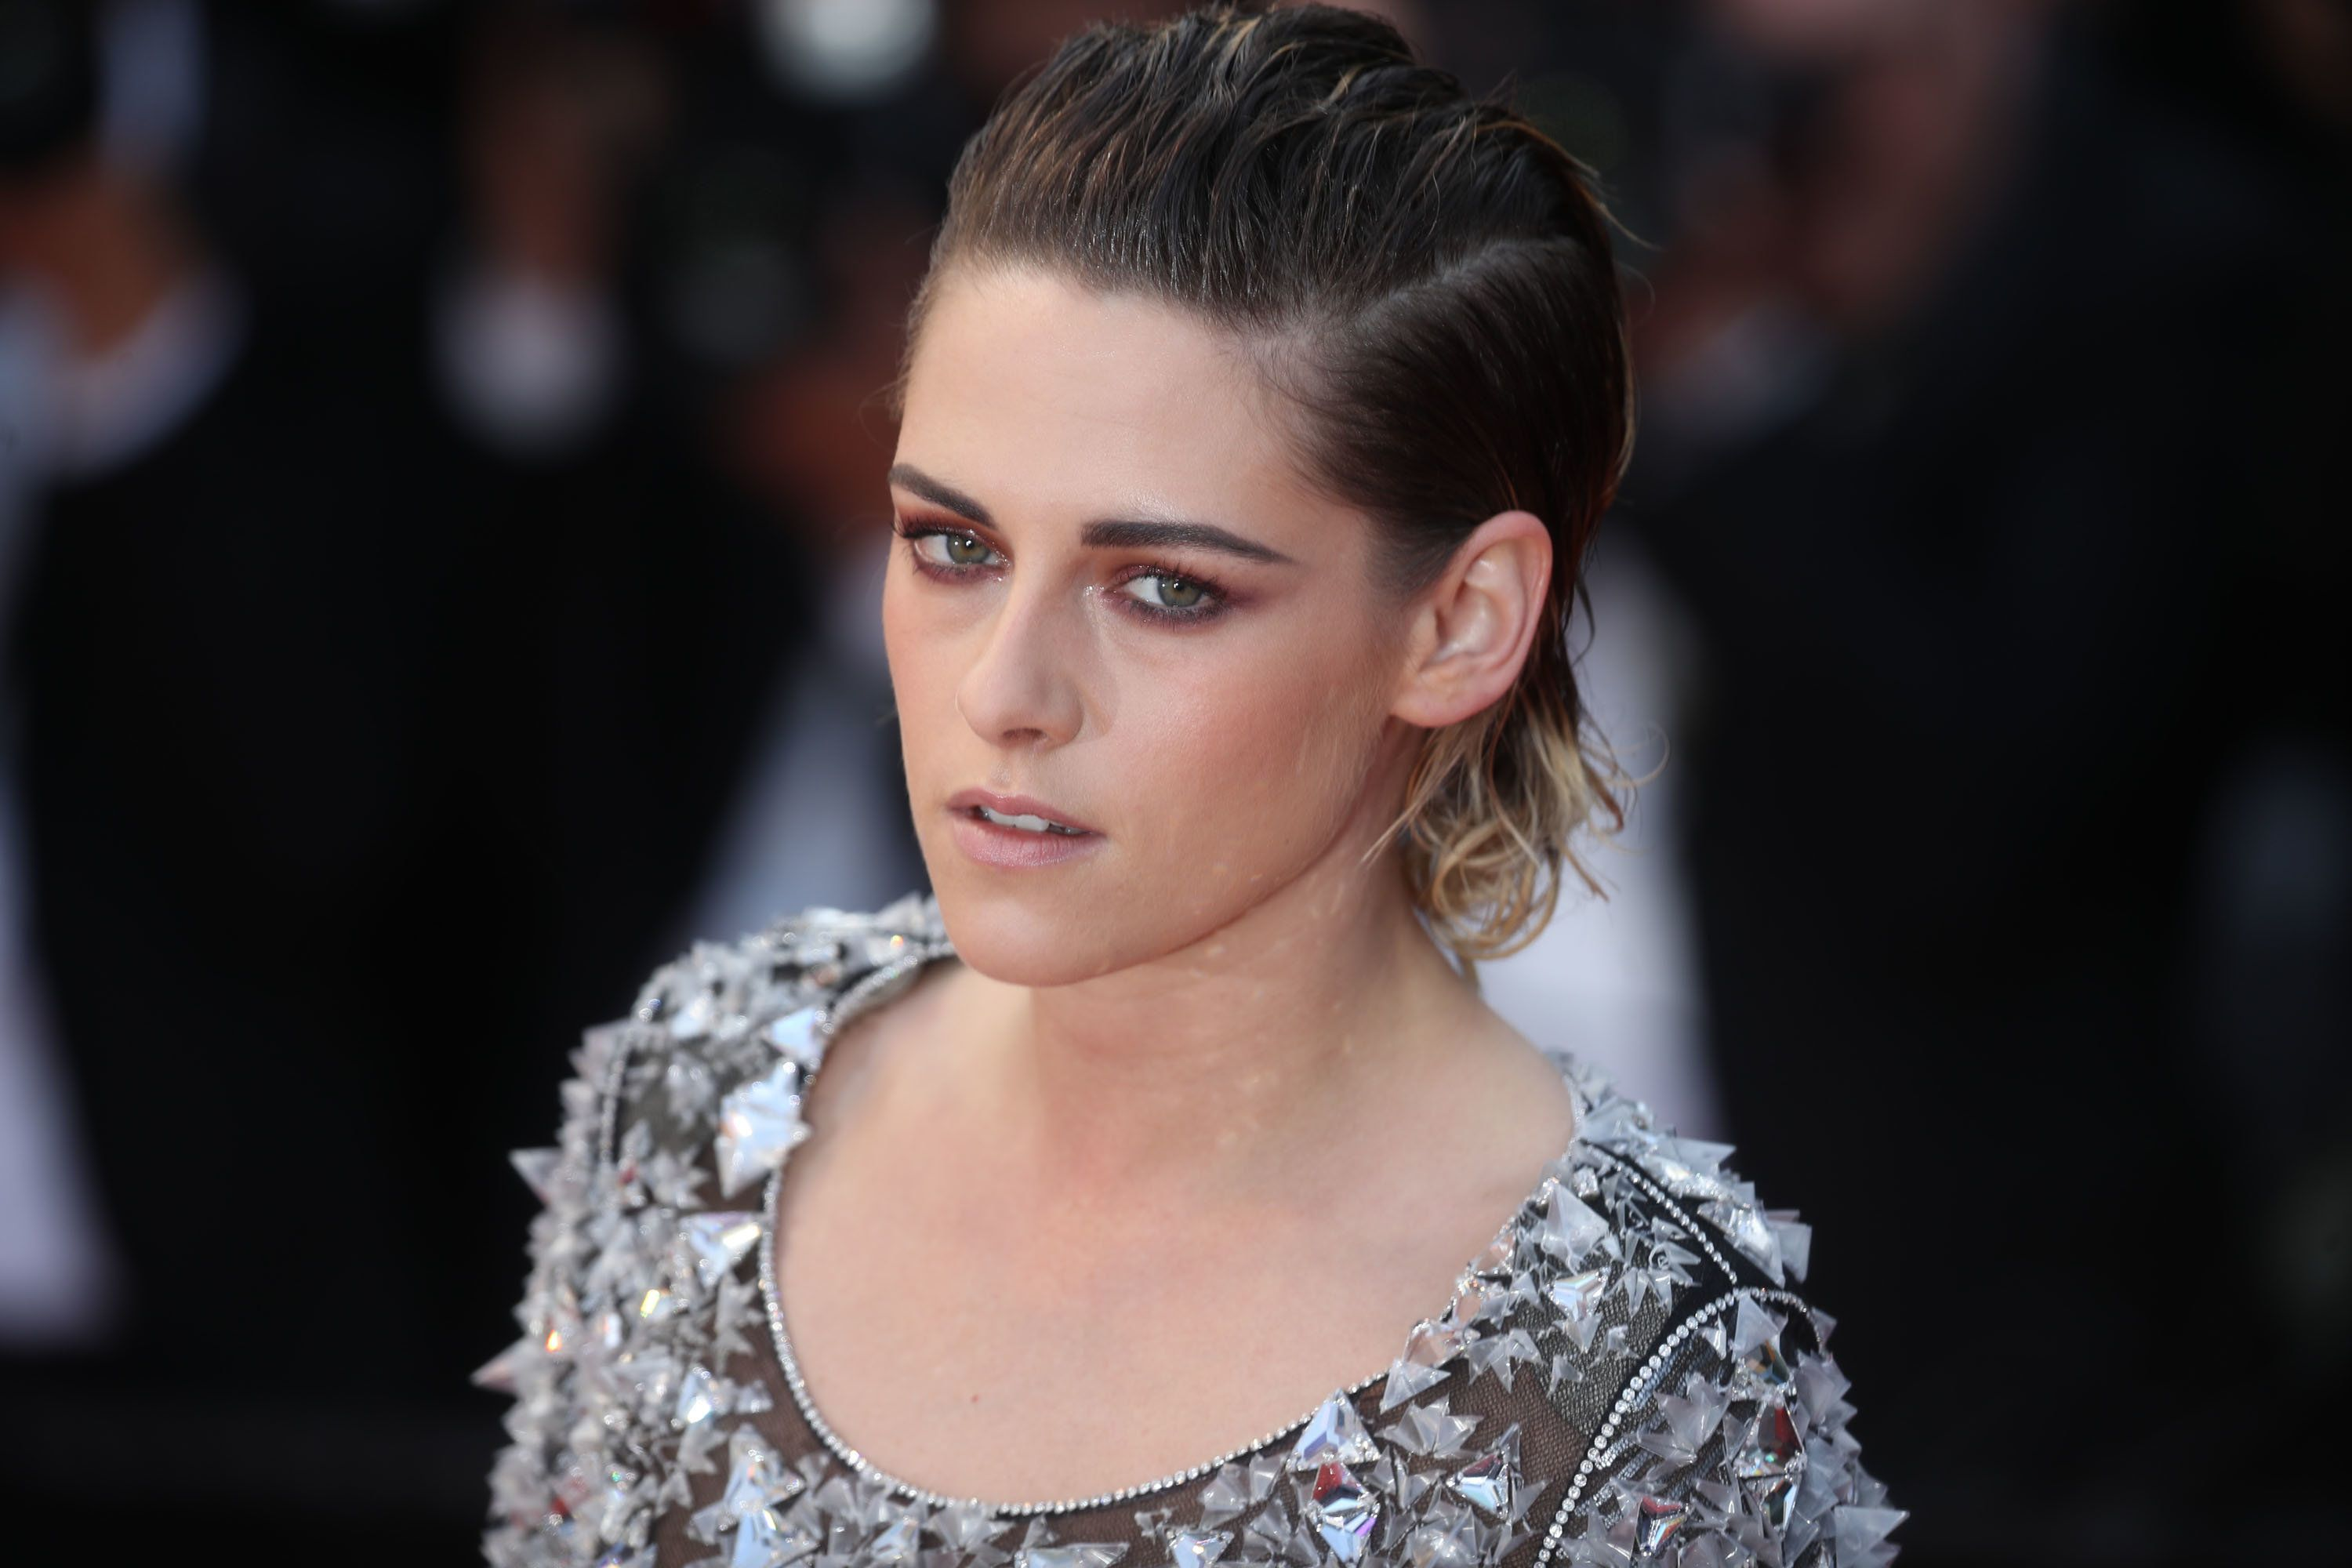 CANNES, FRANCE - MAY 14:  Kristen Stewart attends the screening of 'BlacKkKlansman' during the 71st annual Cannes Film Festival at Palais des Festivals on May 14, 2018 in Cannes, France.  (Photo by Mike Marsland/Mike Marsland/WireImage)